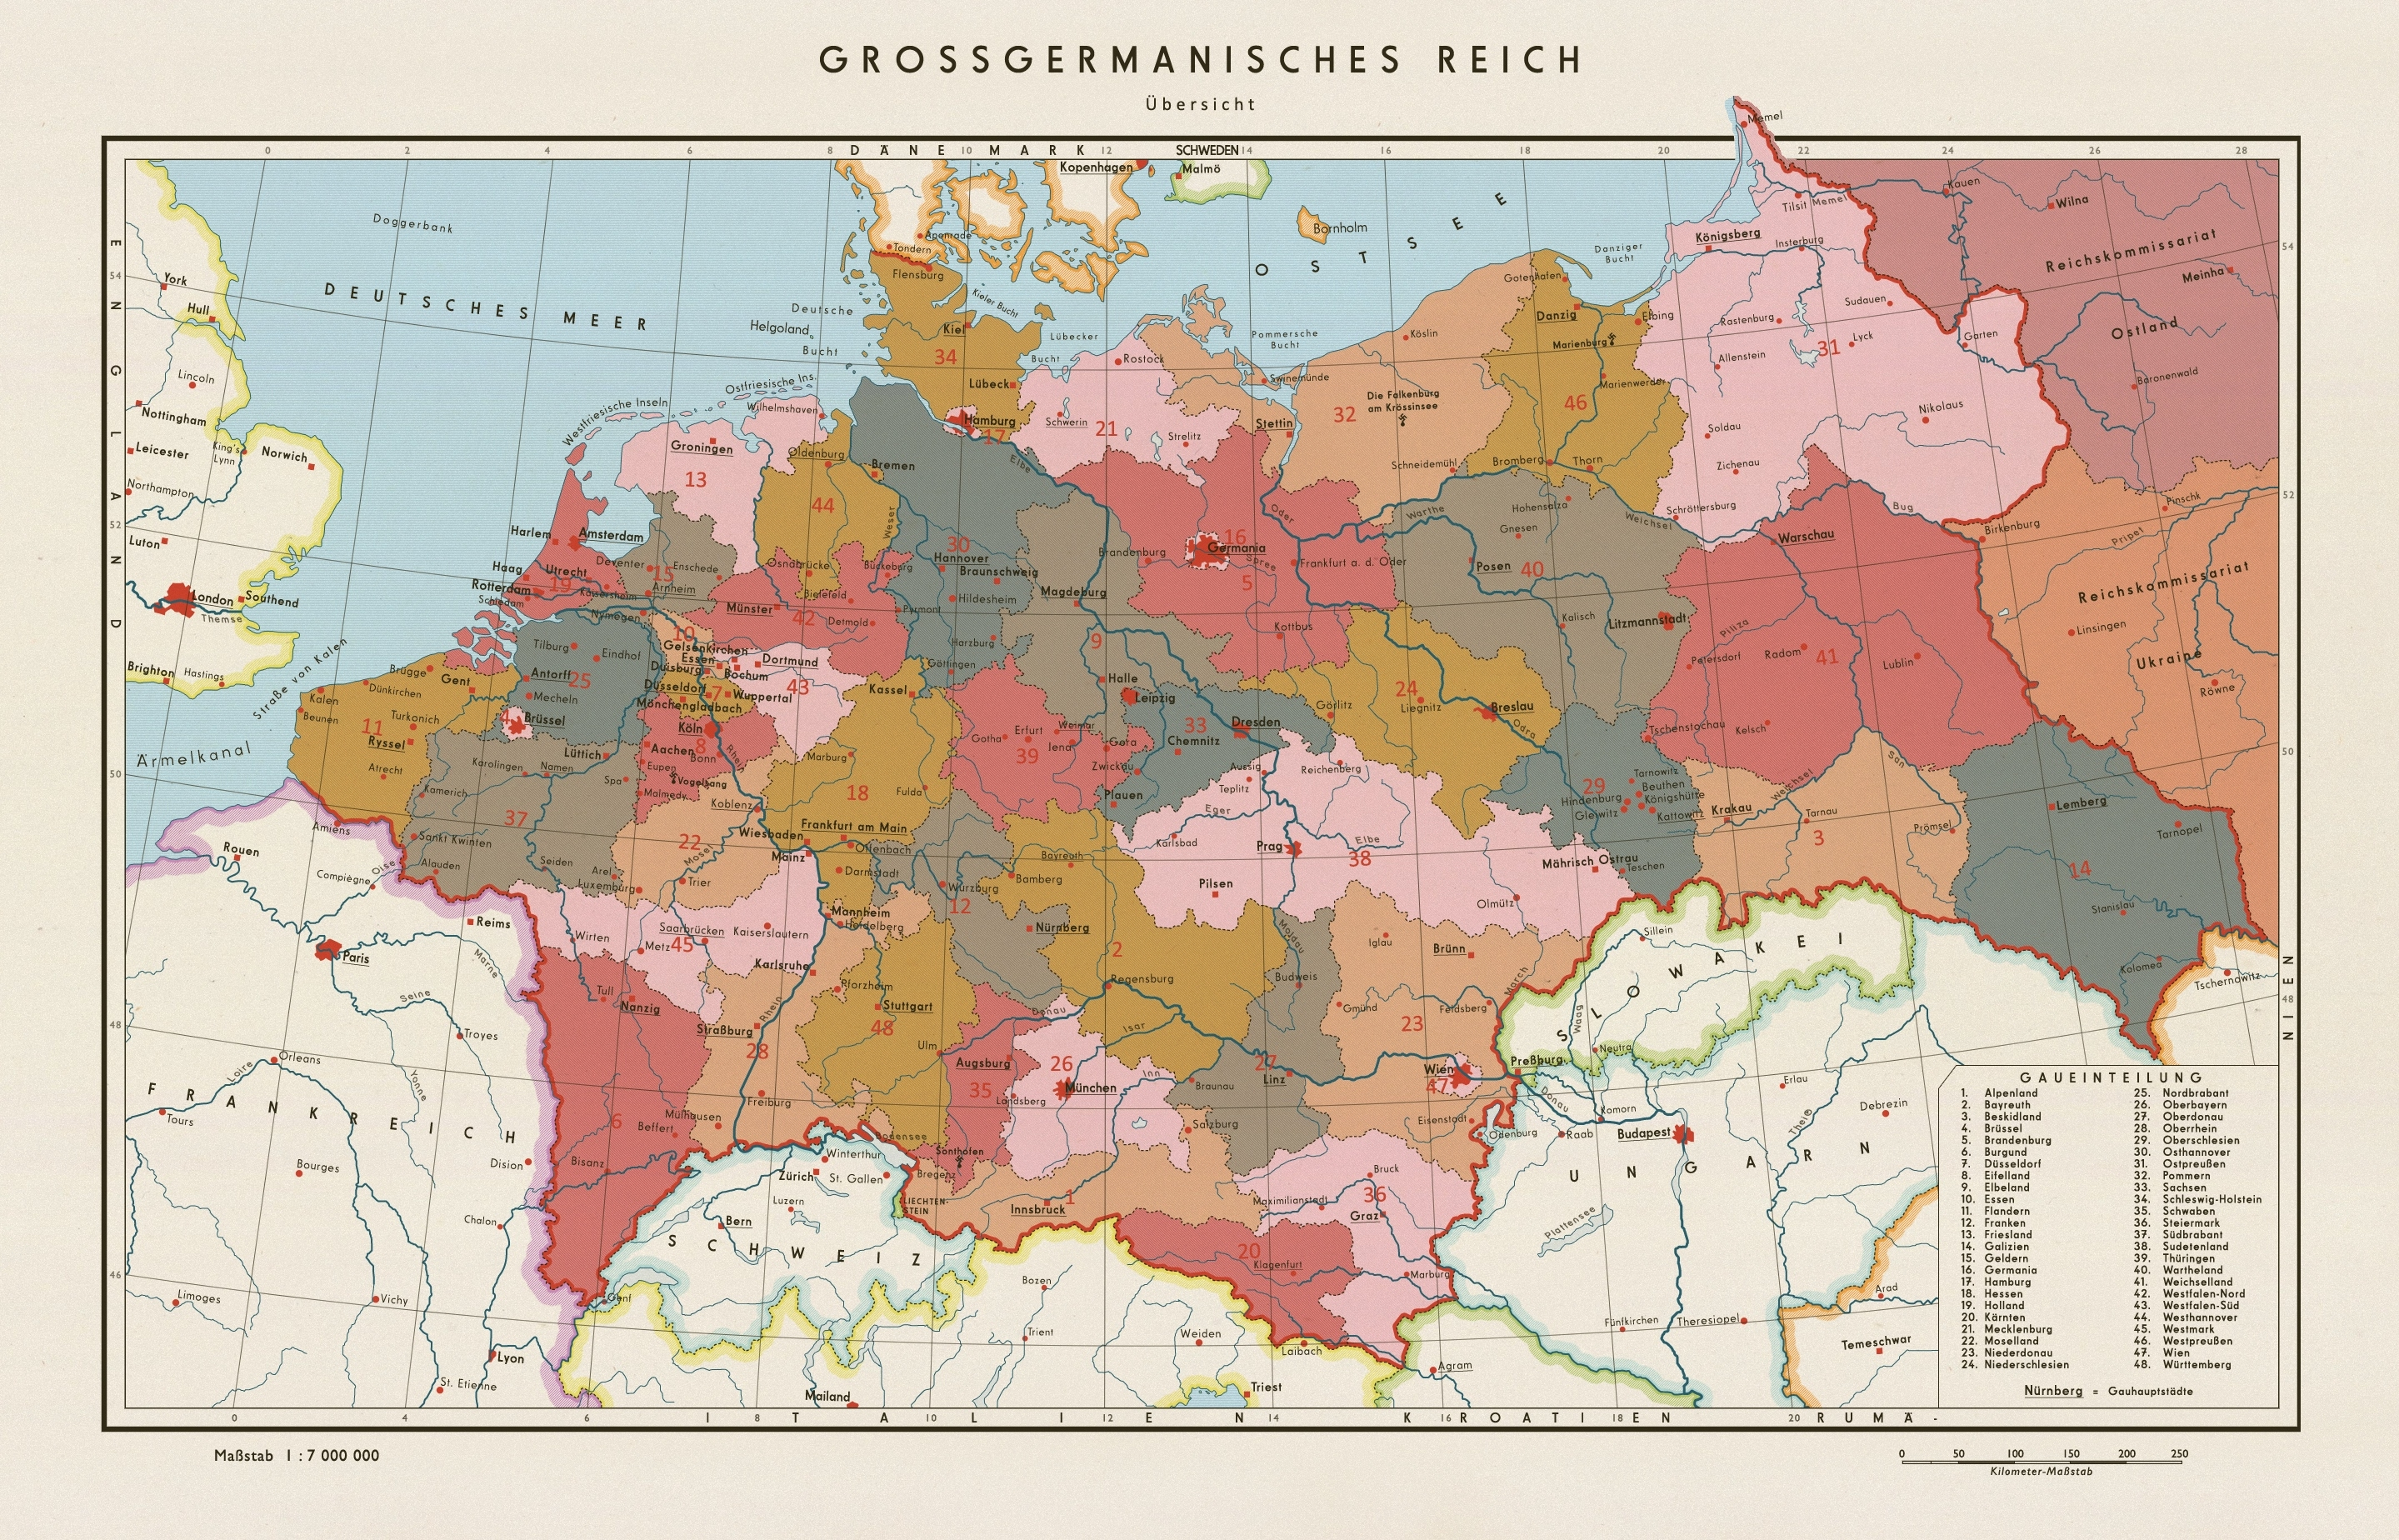 A Map Of Post-World War Ii Germany In A Scenario Where The Nazis Won pertaining to Post Ww2 Germany Map